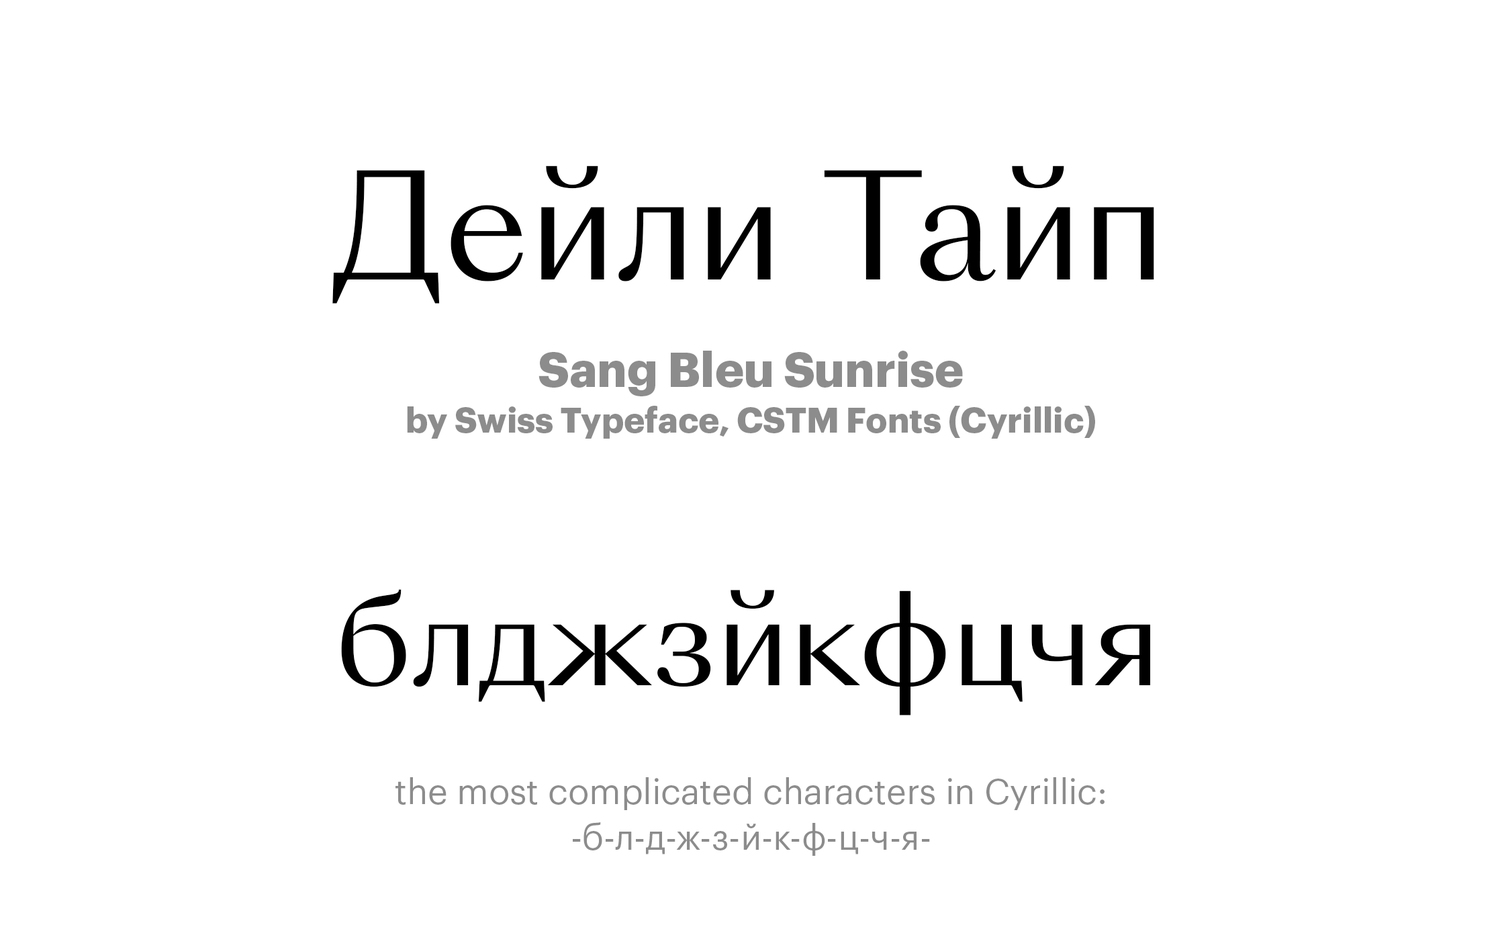 Sang-Bleu-Sunrise-by-Swiss-Typeface,-CSTM-Fonts-(Cyrillic)